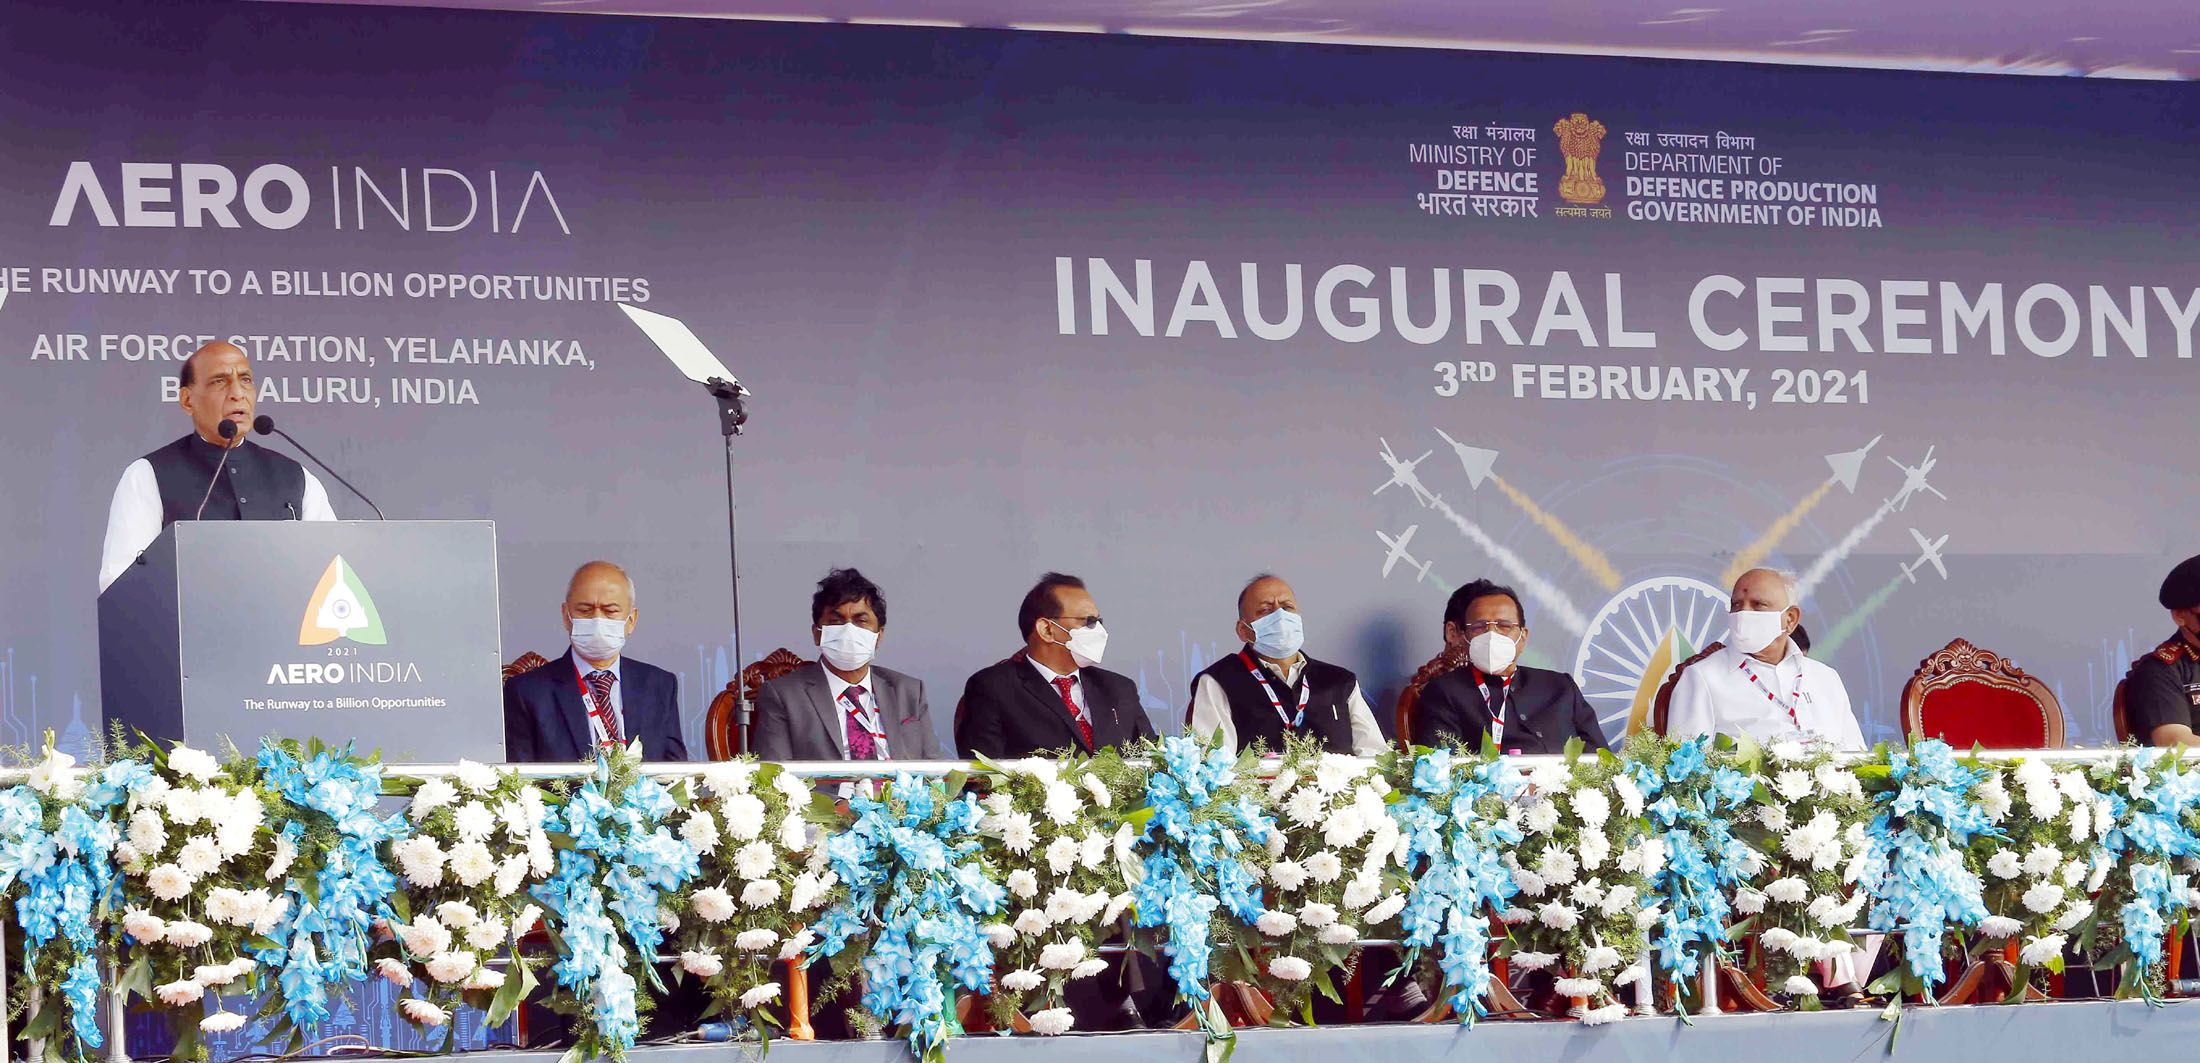 The inauguration of the biennial Air Show, Aero India 2021